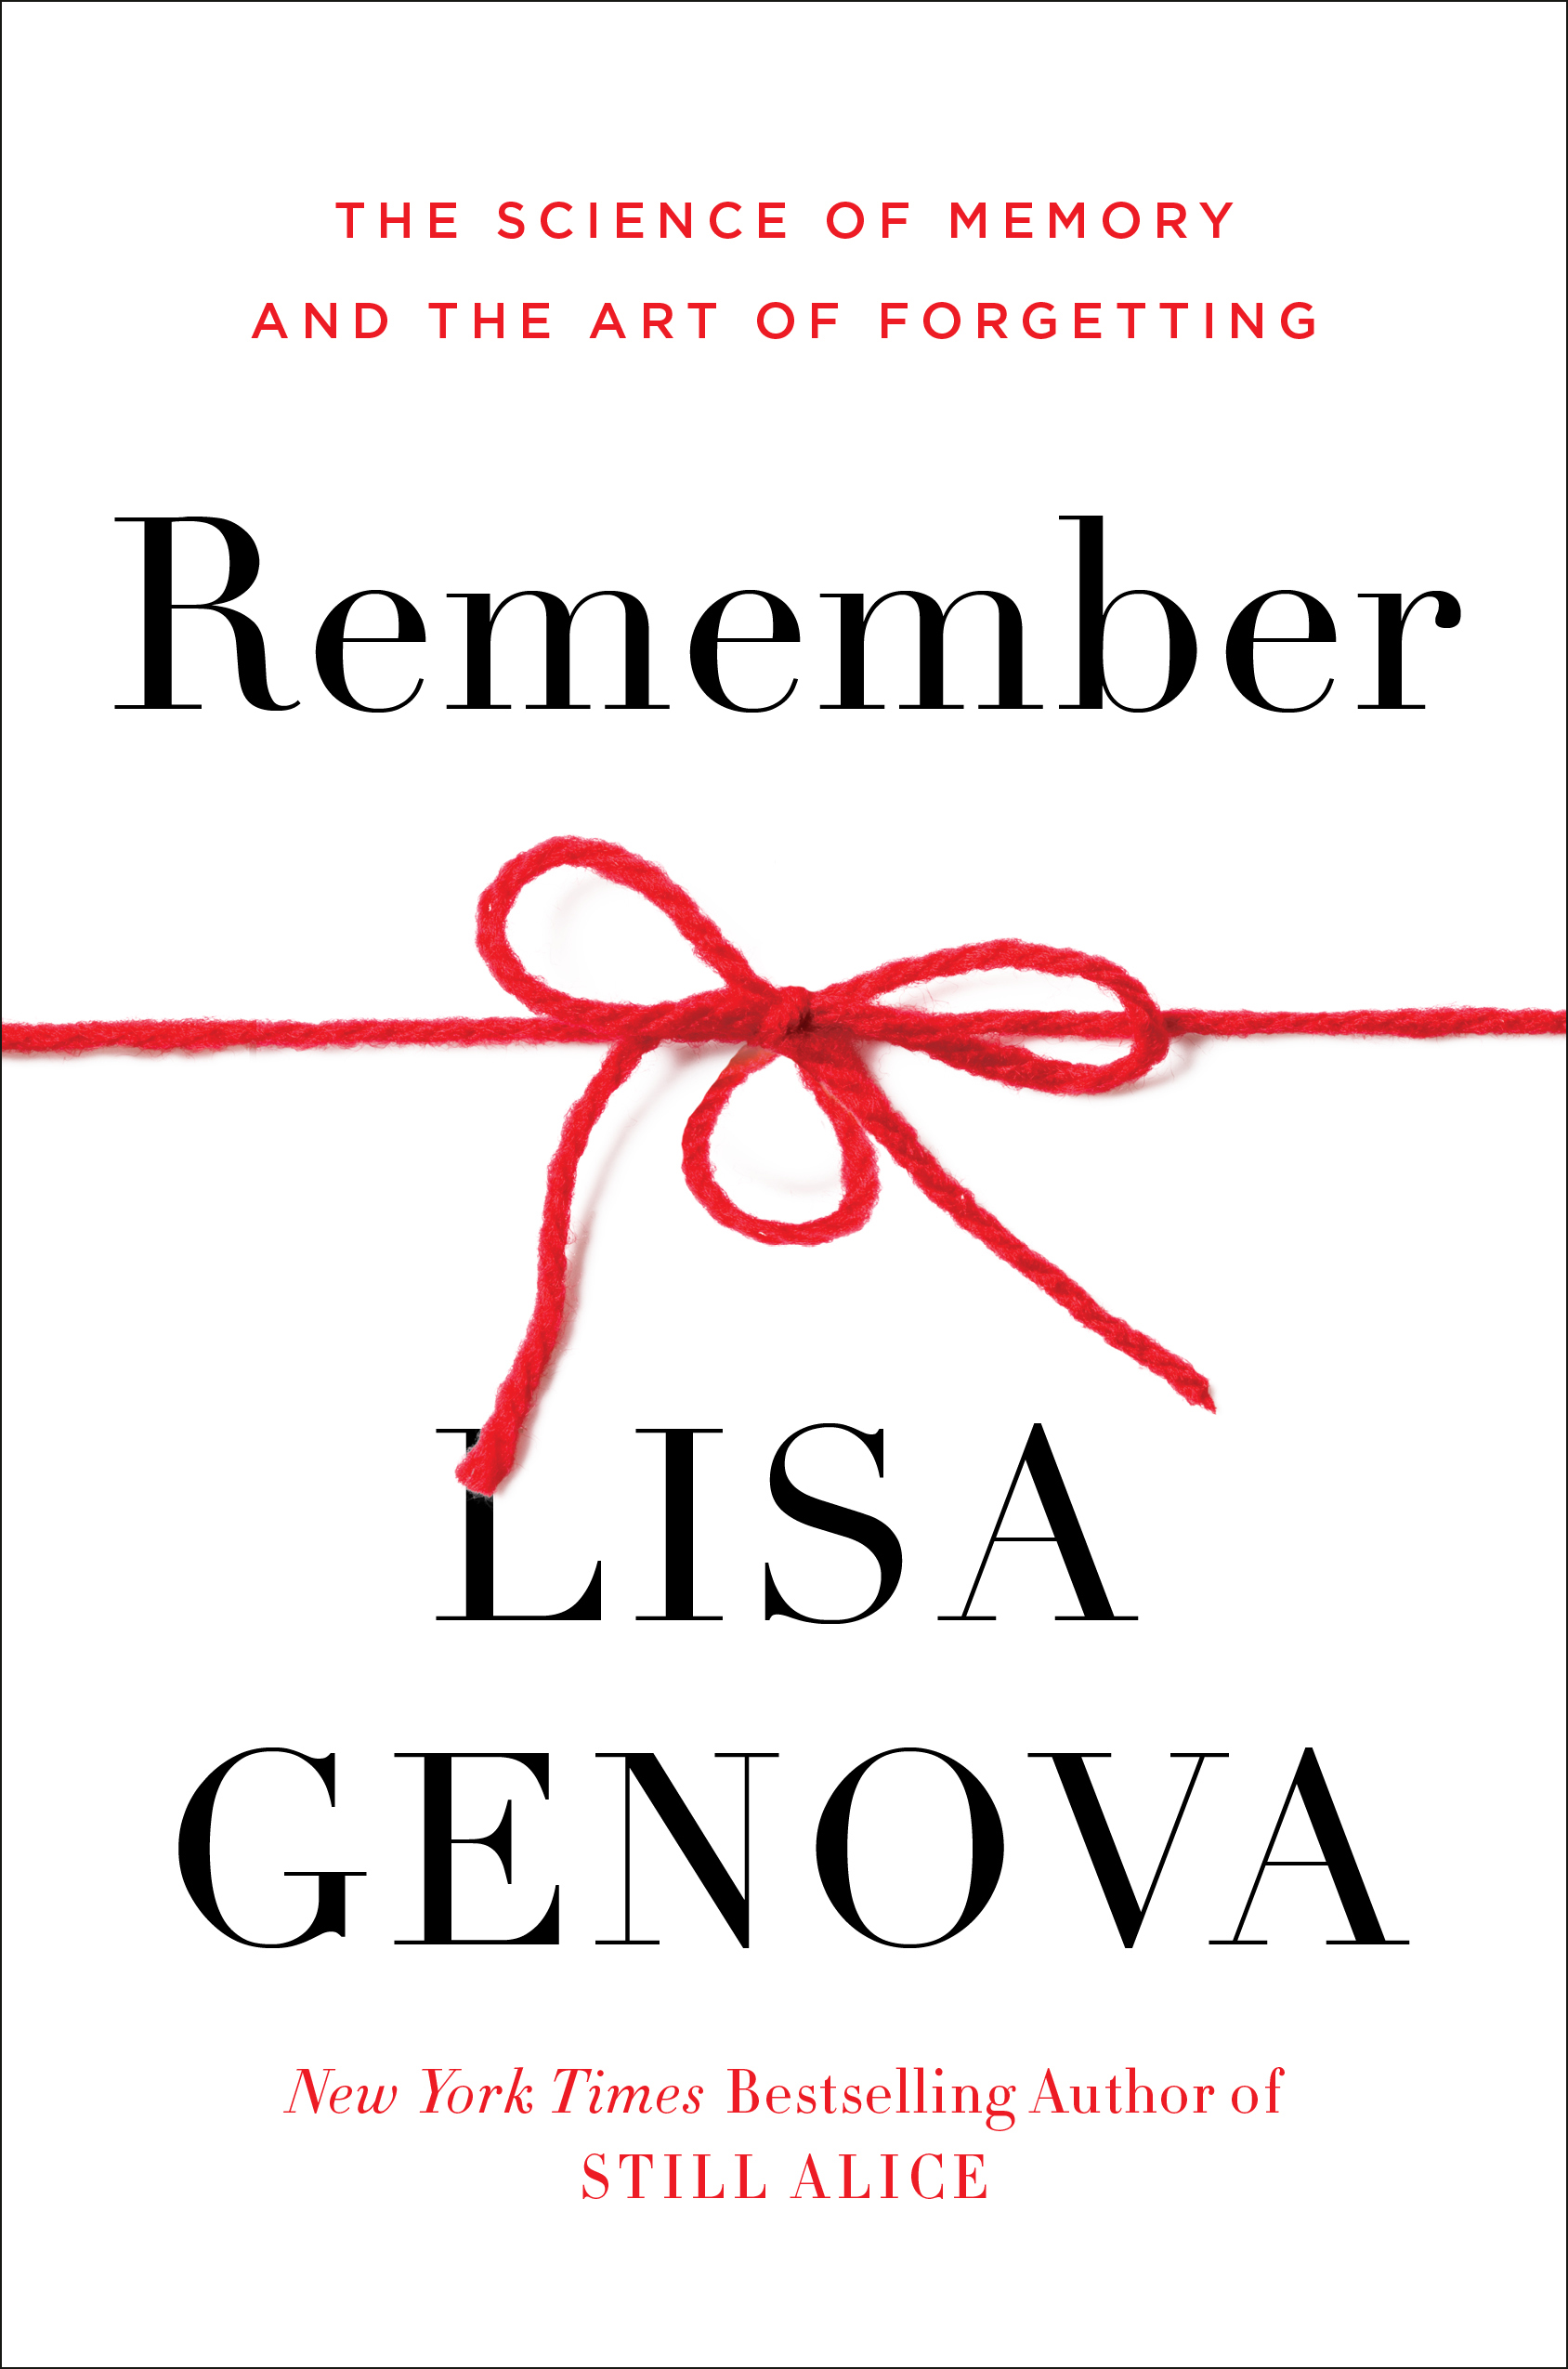 Coming in March 2021!  Remember: The Science of Memory and the Art of Forgetting